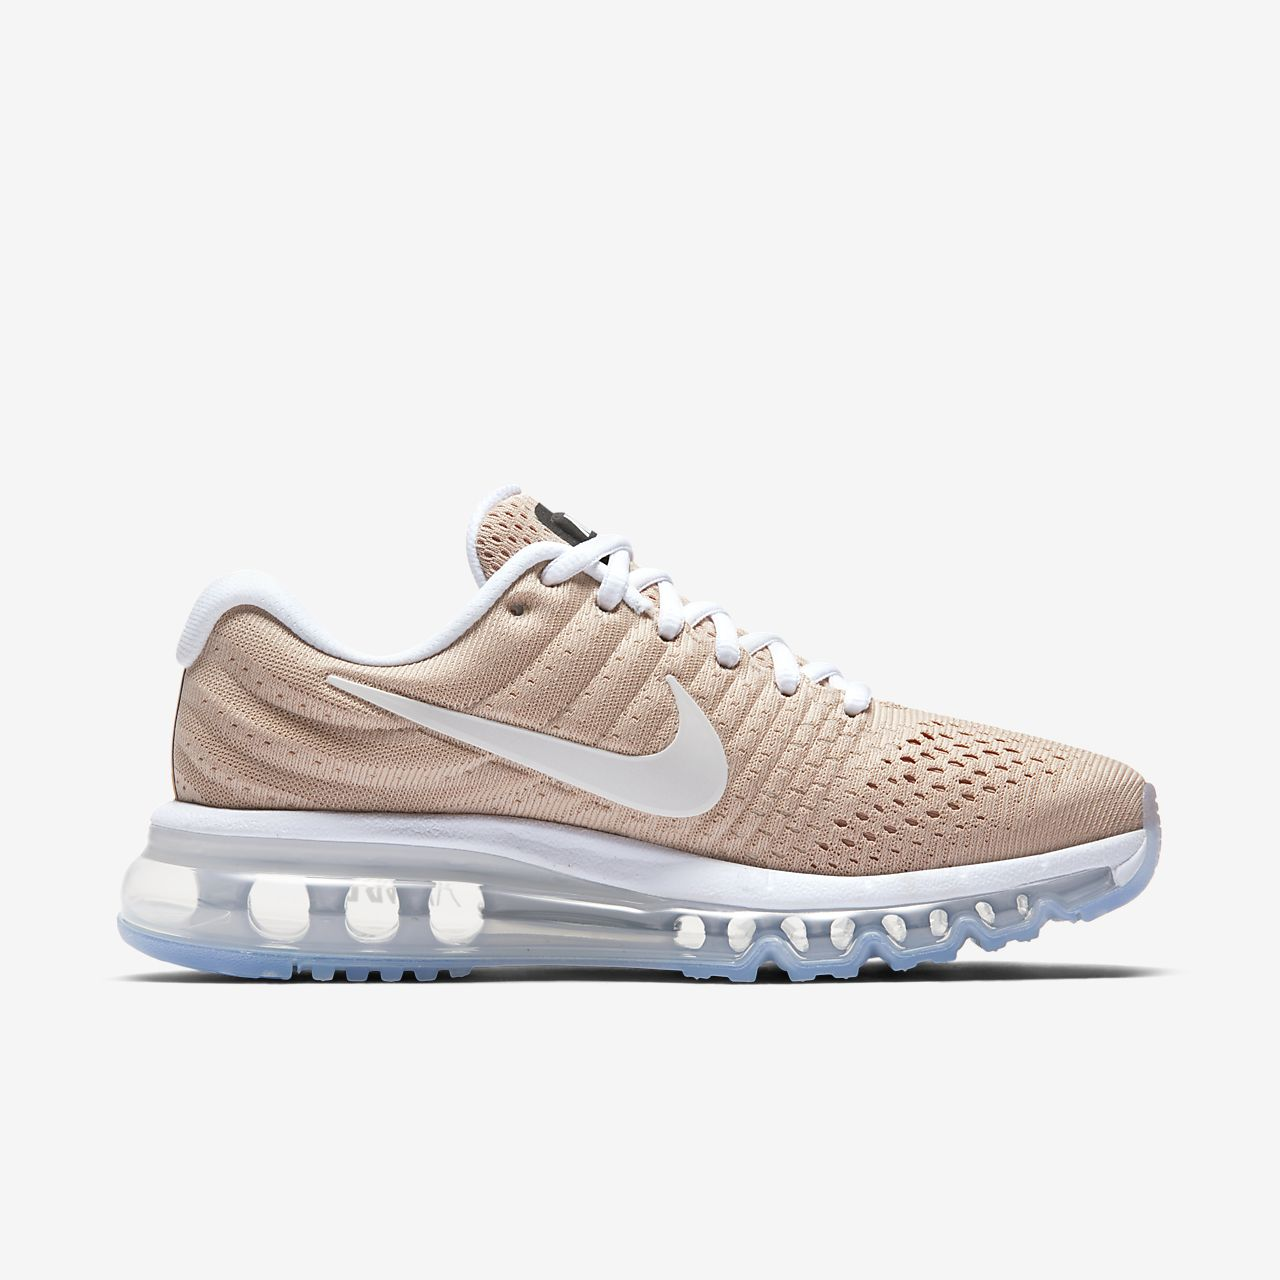 Acquista nike air max 96 donna 2017 OFF31% sconti